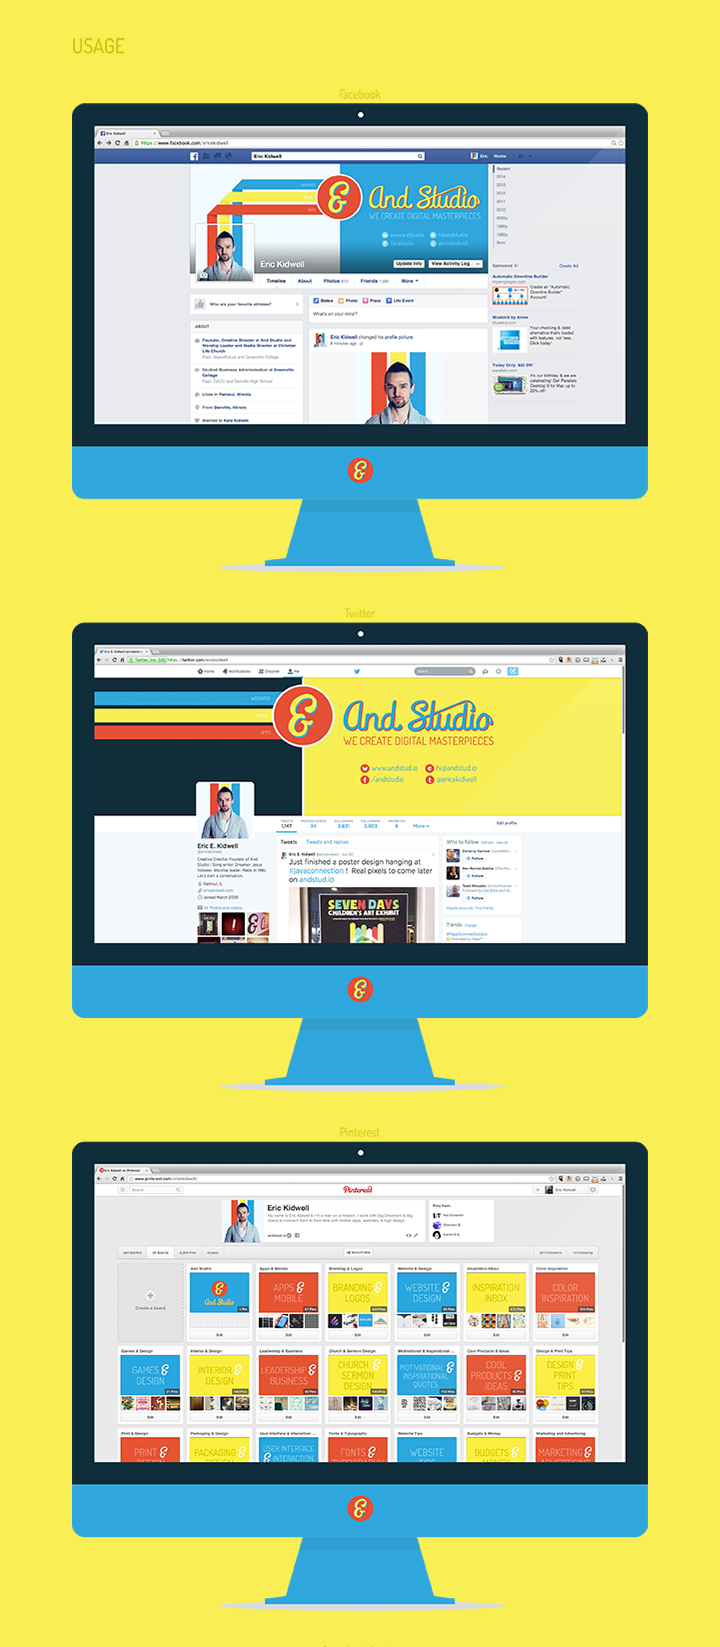 Brand Style Guide - And Studio - Usage - Social